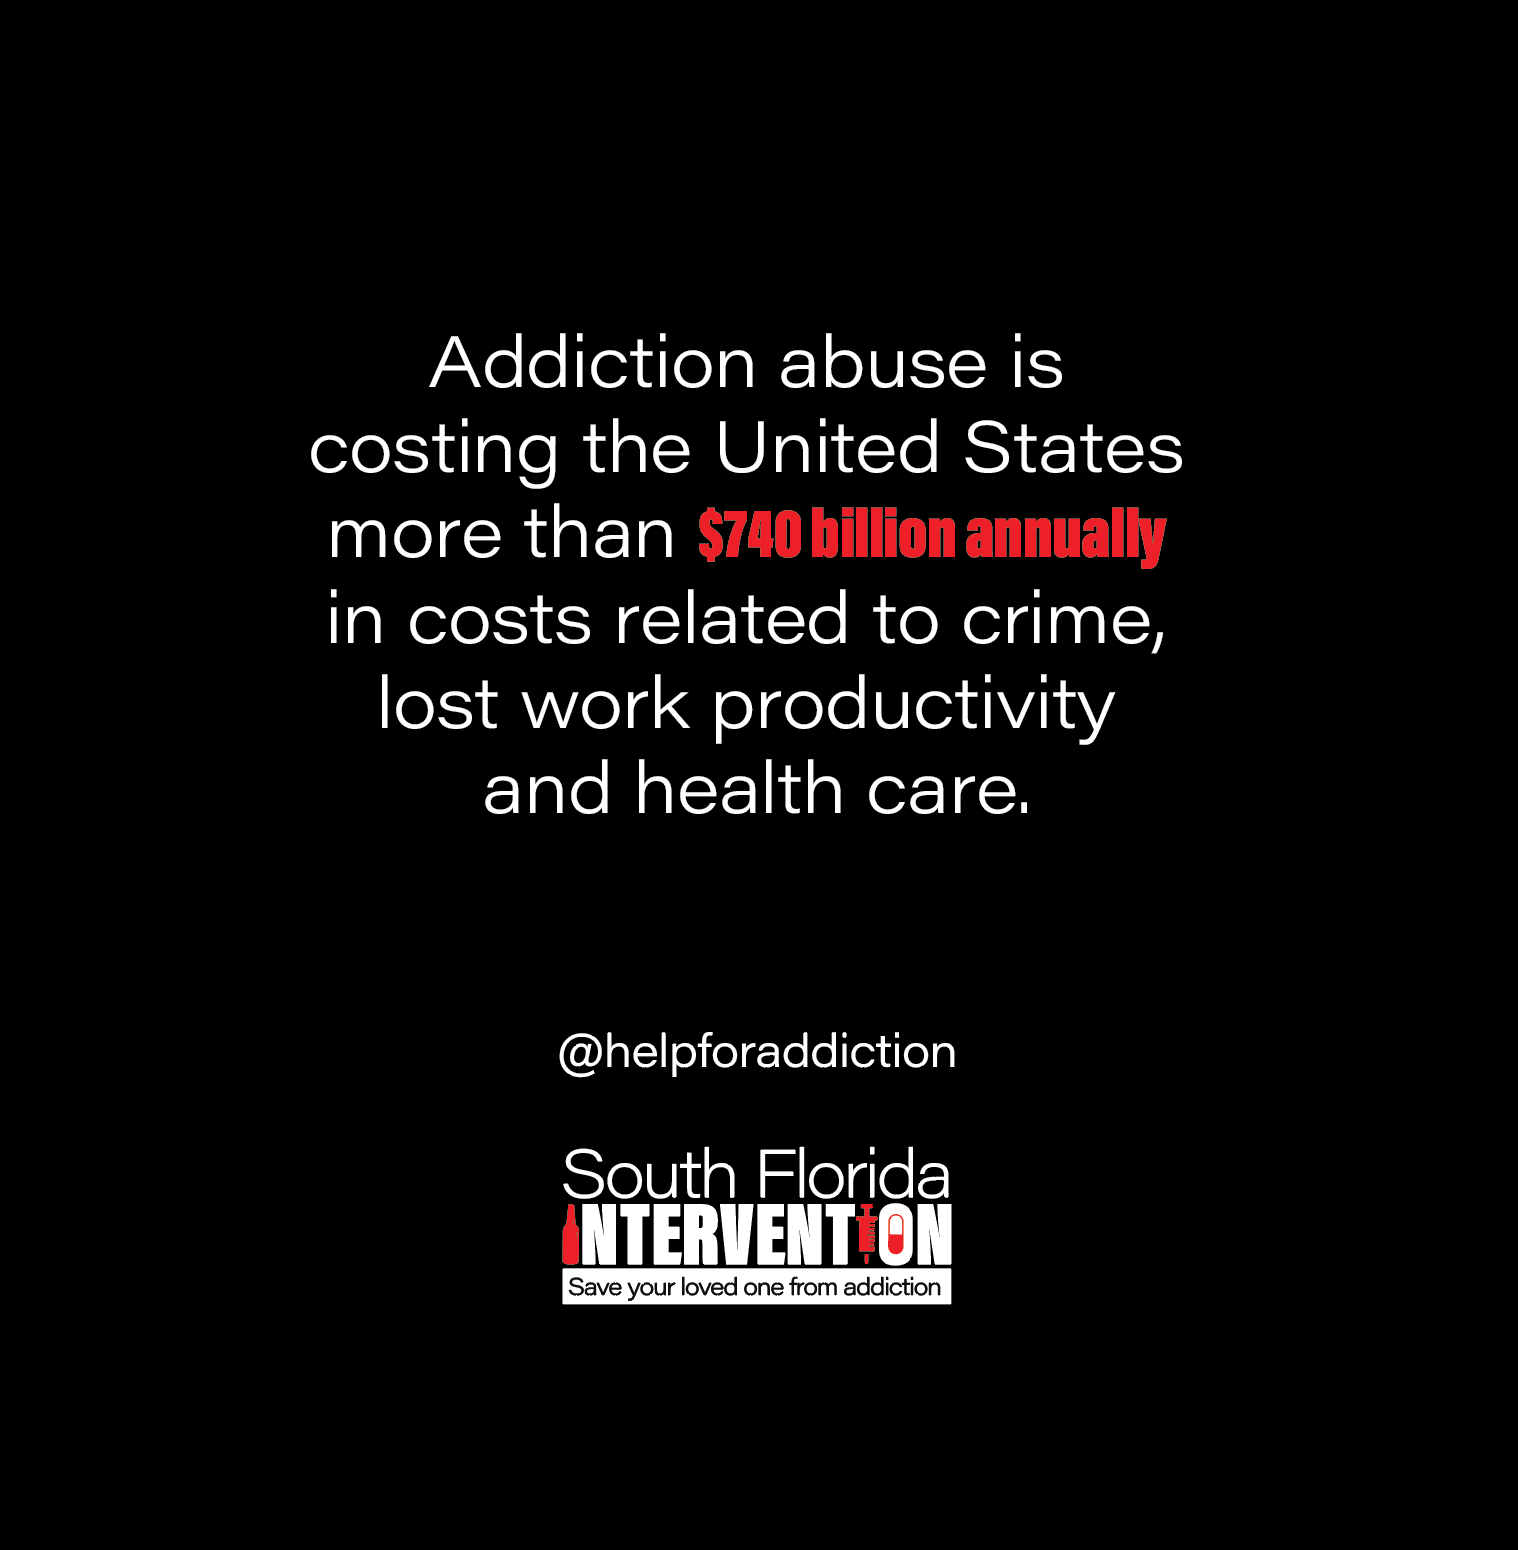 addiction abuse is costing the United States more than $740 billion annually in costs related to crime, lost work productivity and health care @helpforaddiction